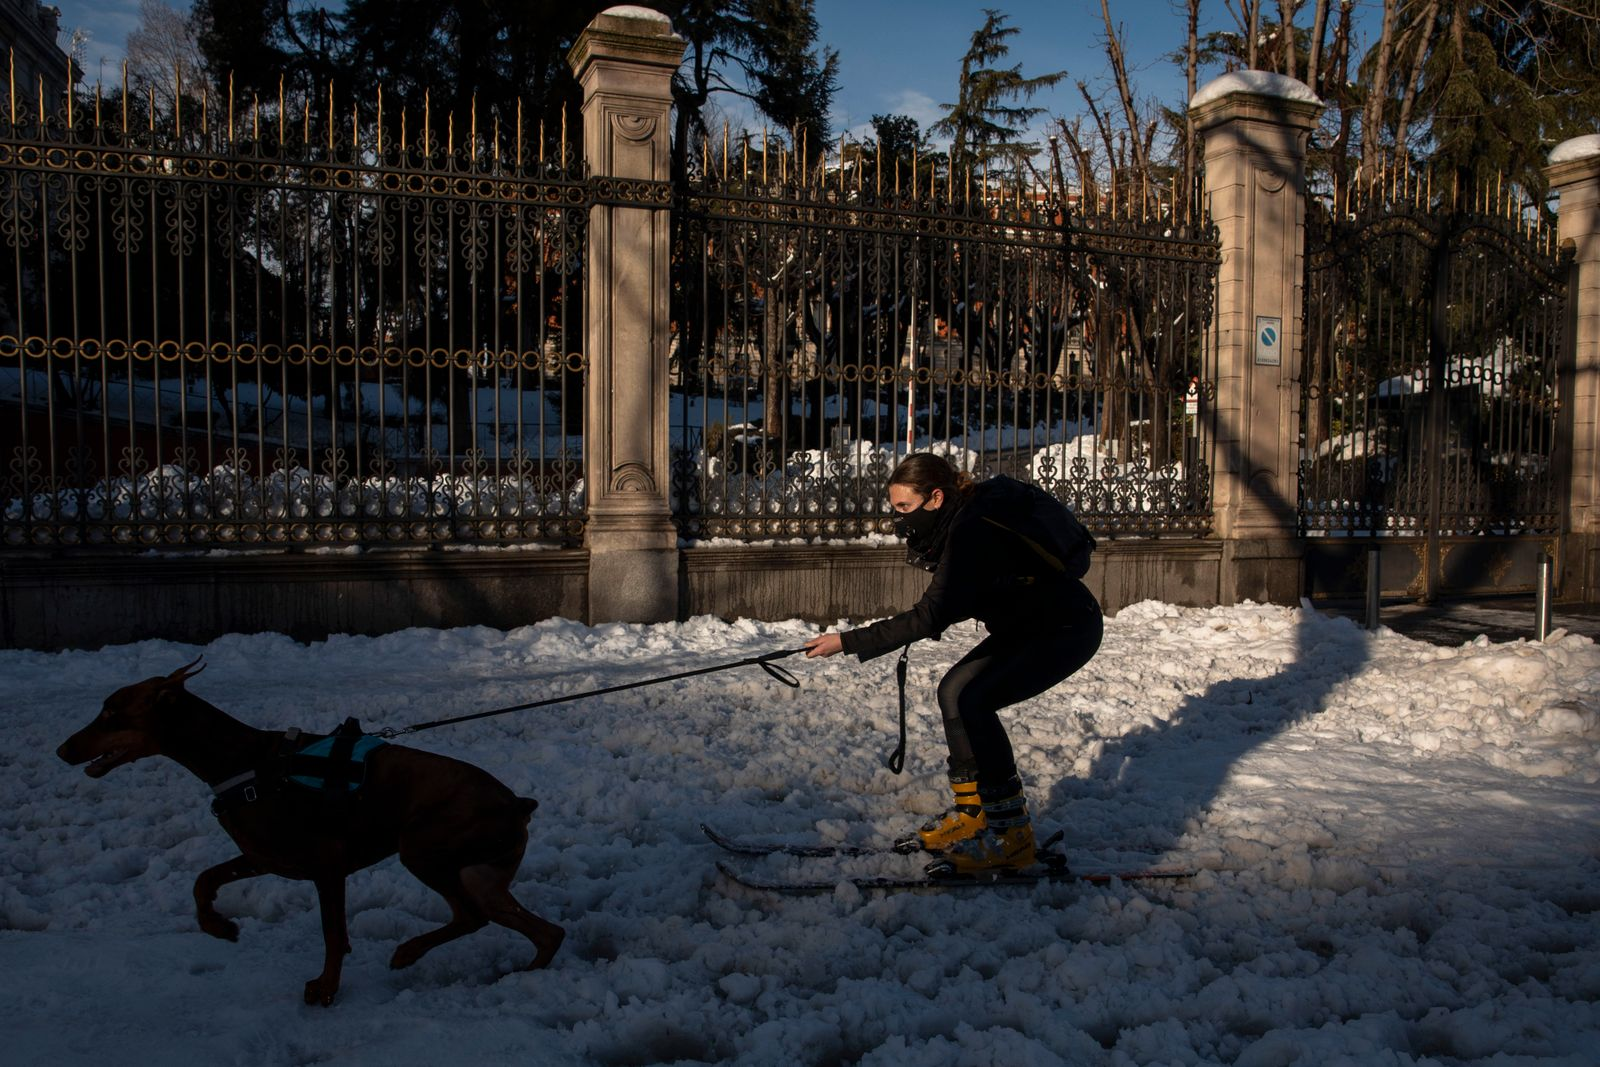 *** BESTPIX *** Madrid Digs Out From Exceptional Snowfall